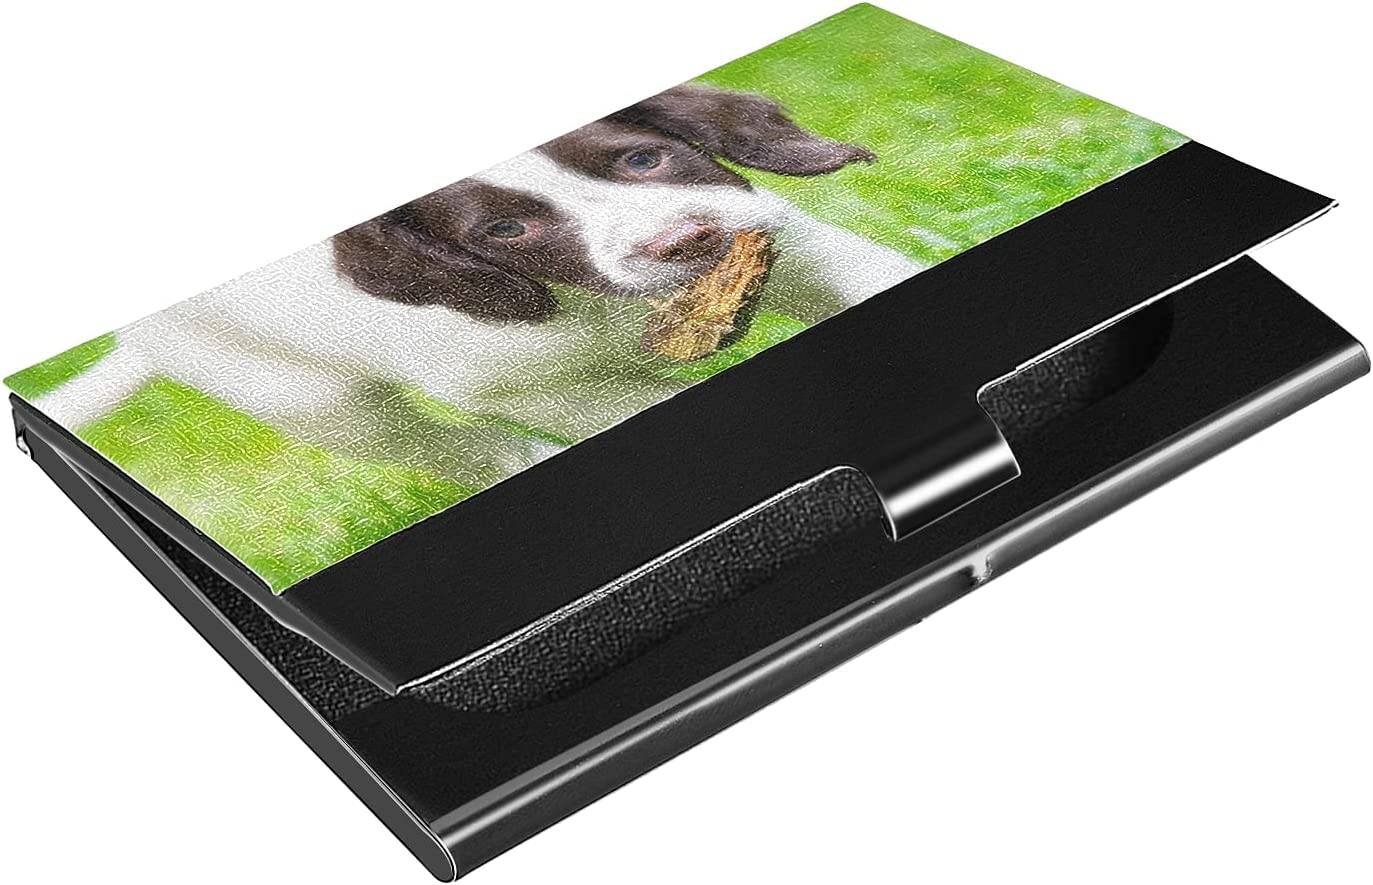 New mail order OTVEE Dog Memphis Mall Puppy Grass Business Leather Stain Coated Holder Card